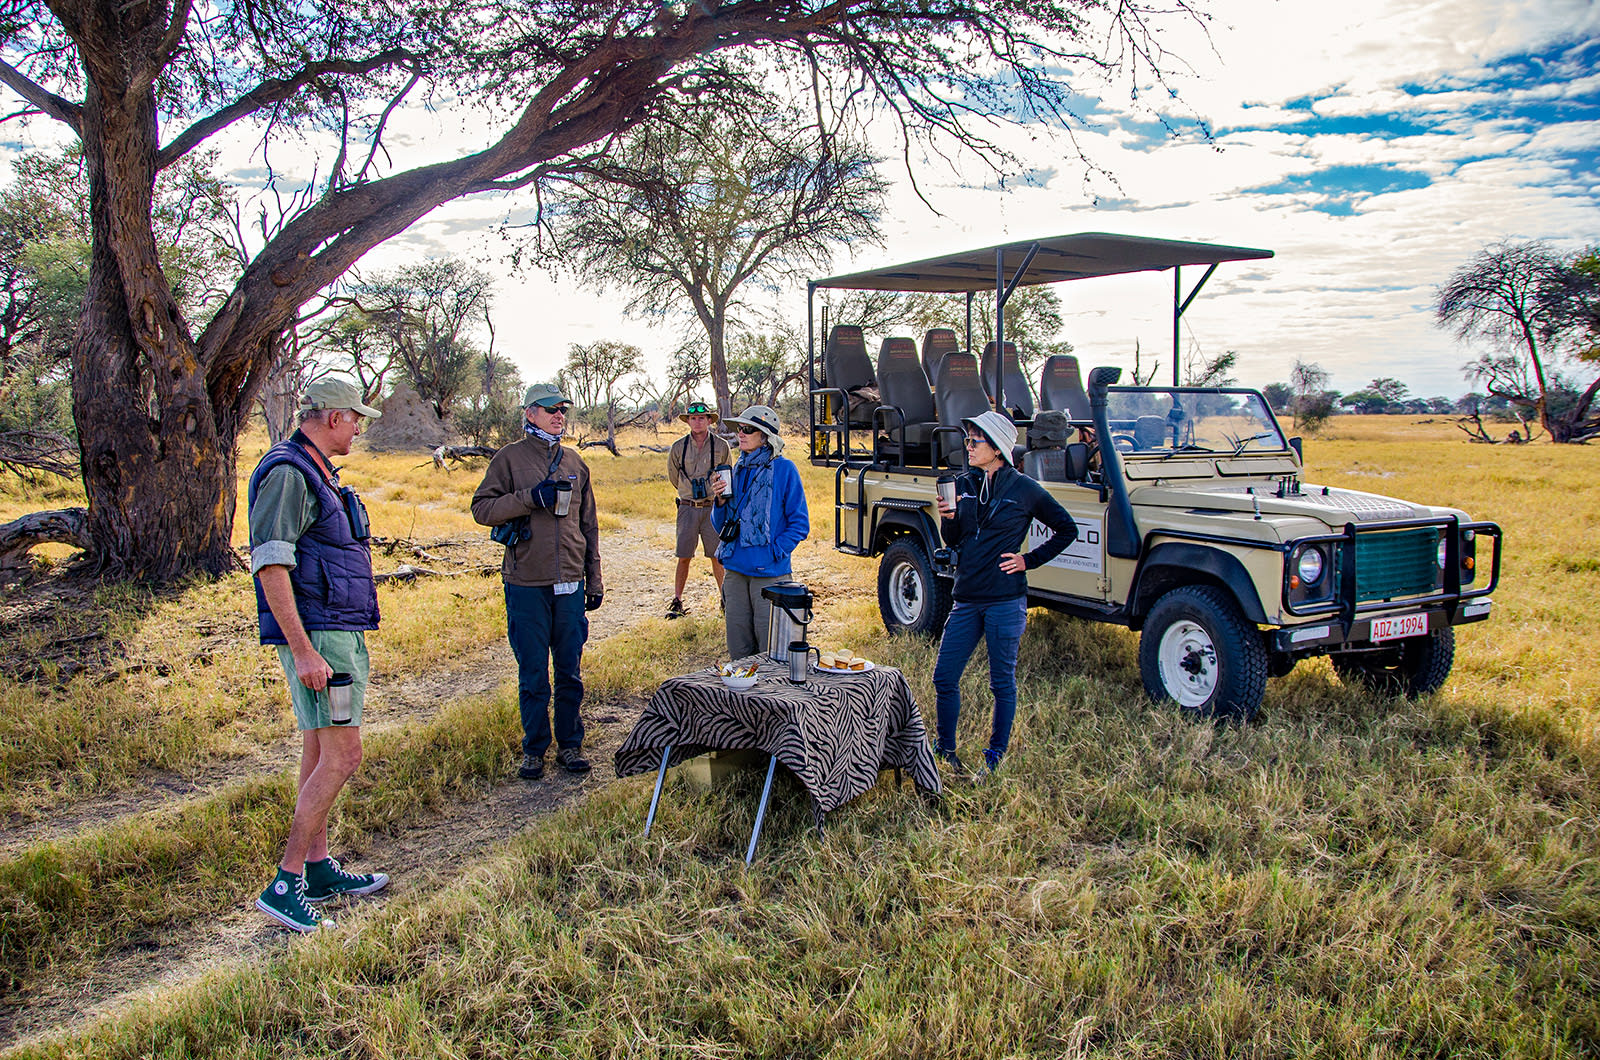 Group of travelers having coffee by safari jeep in Zimbabwe